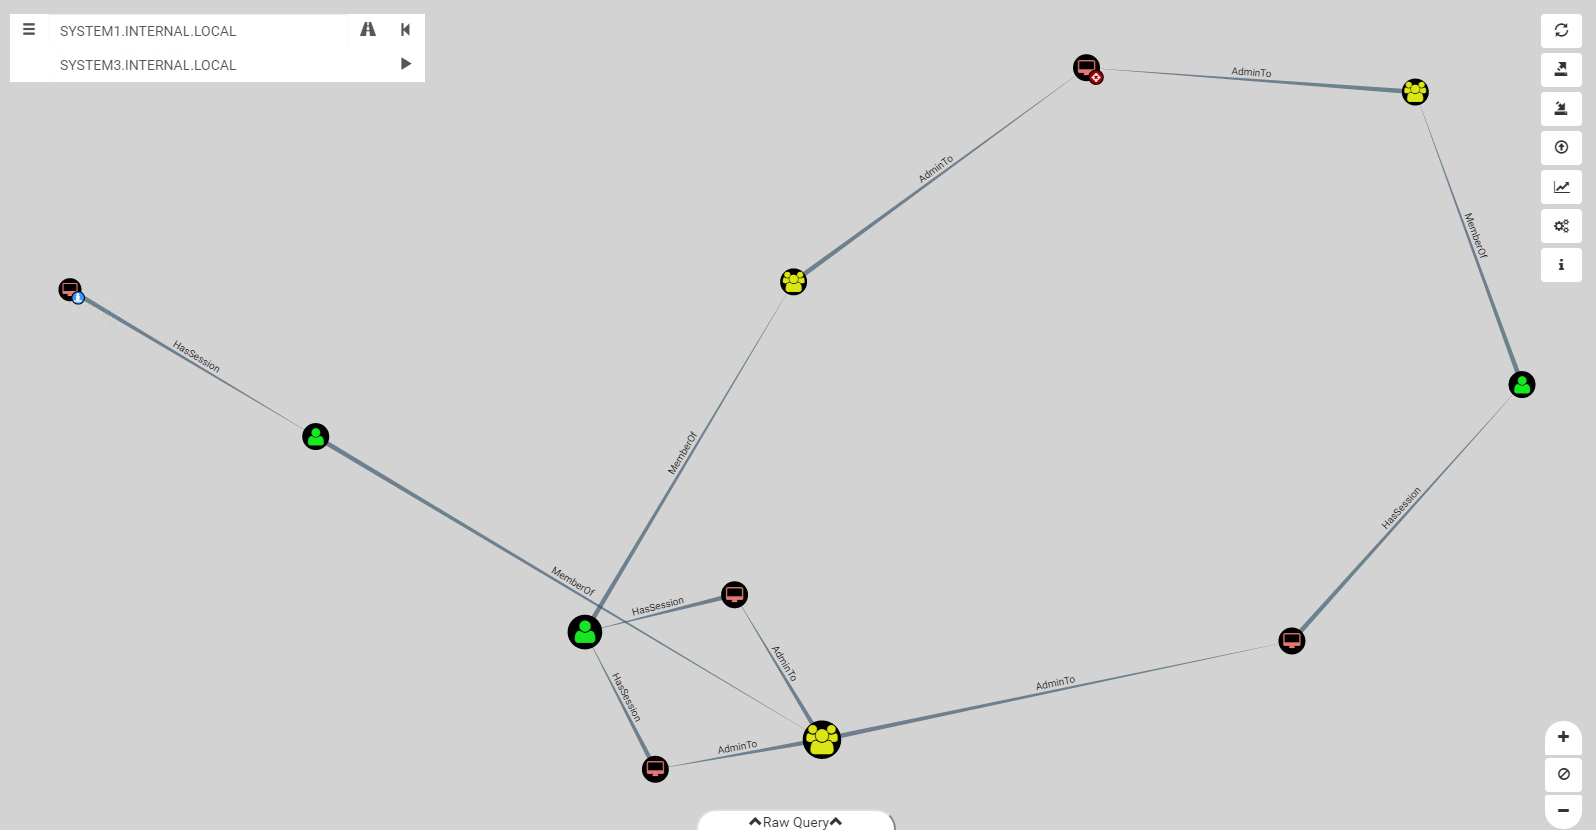 Mapping the attack path from source to target with BloodHound